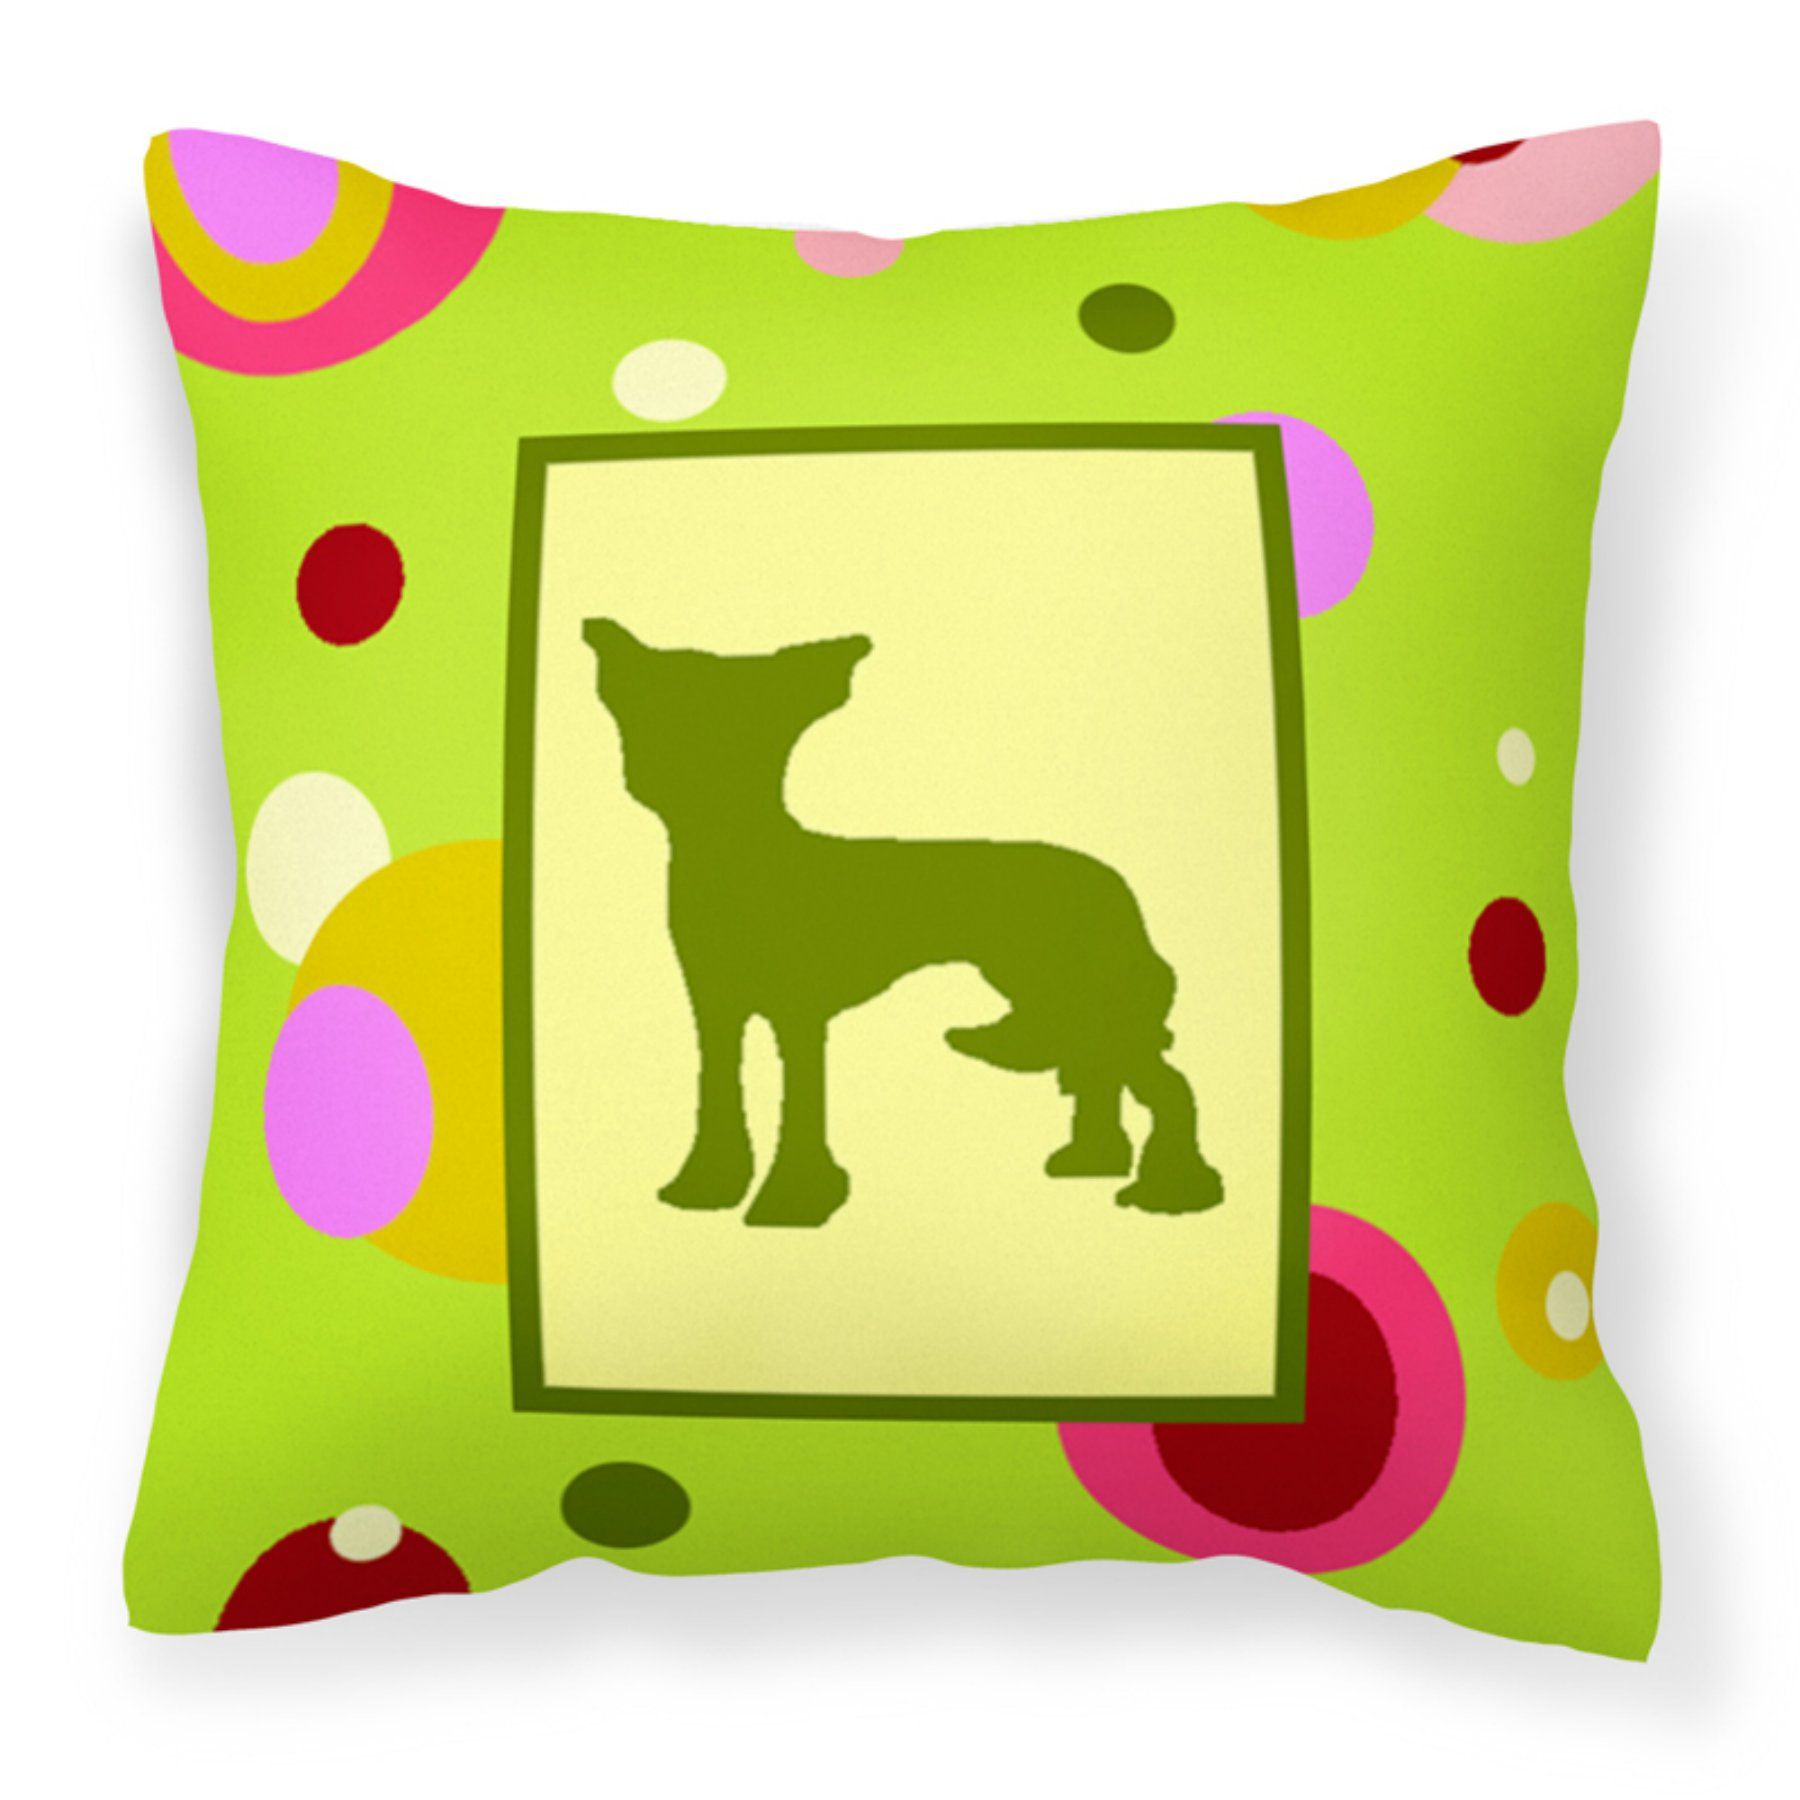 Carolines Treasures Chinese Crested Dog Canvas Fabric Decorative Pillow - CK1099PW1414